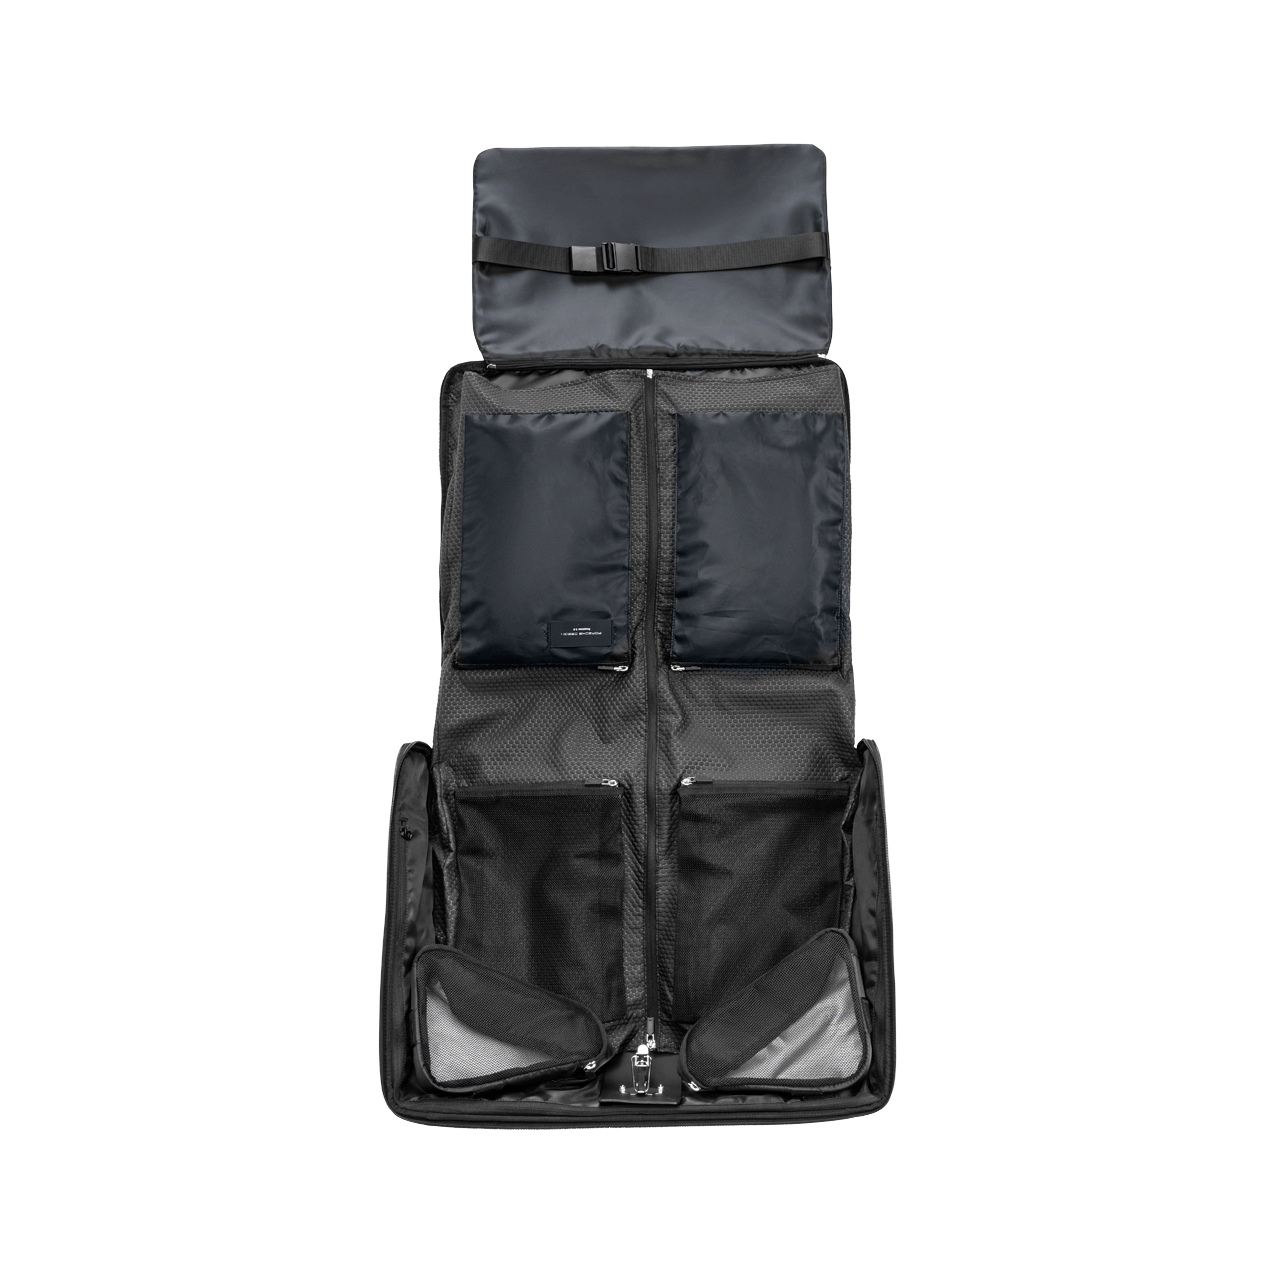 ROADSTER SOFTCASE SERIES GARMENTBAG S - фото 3